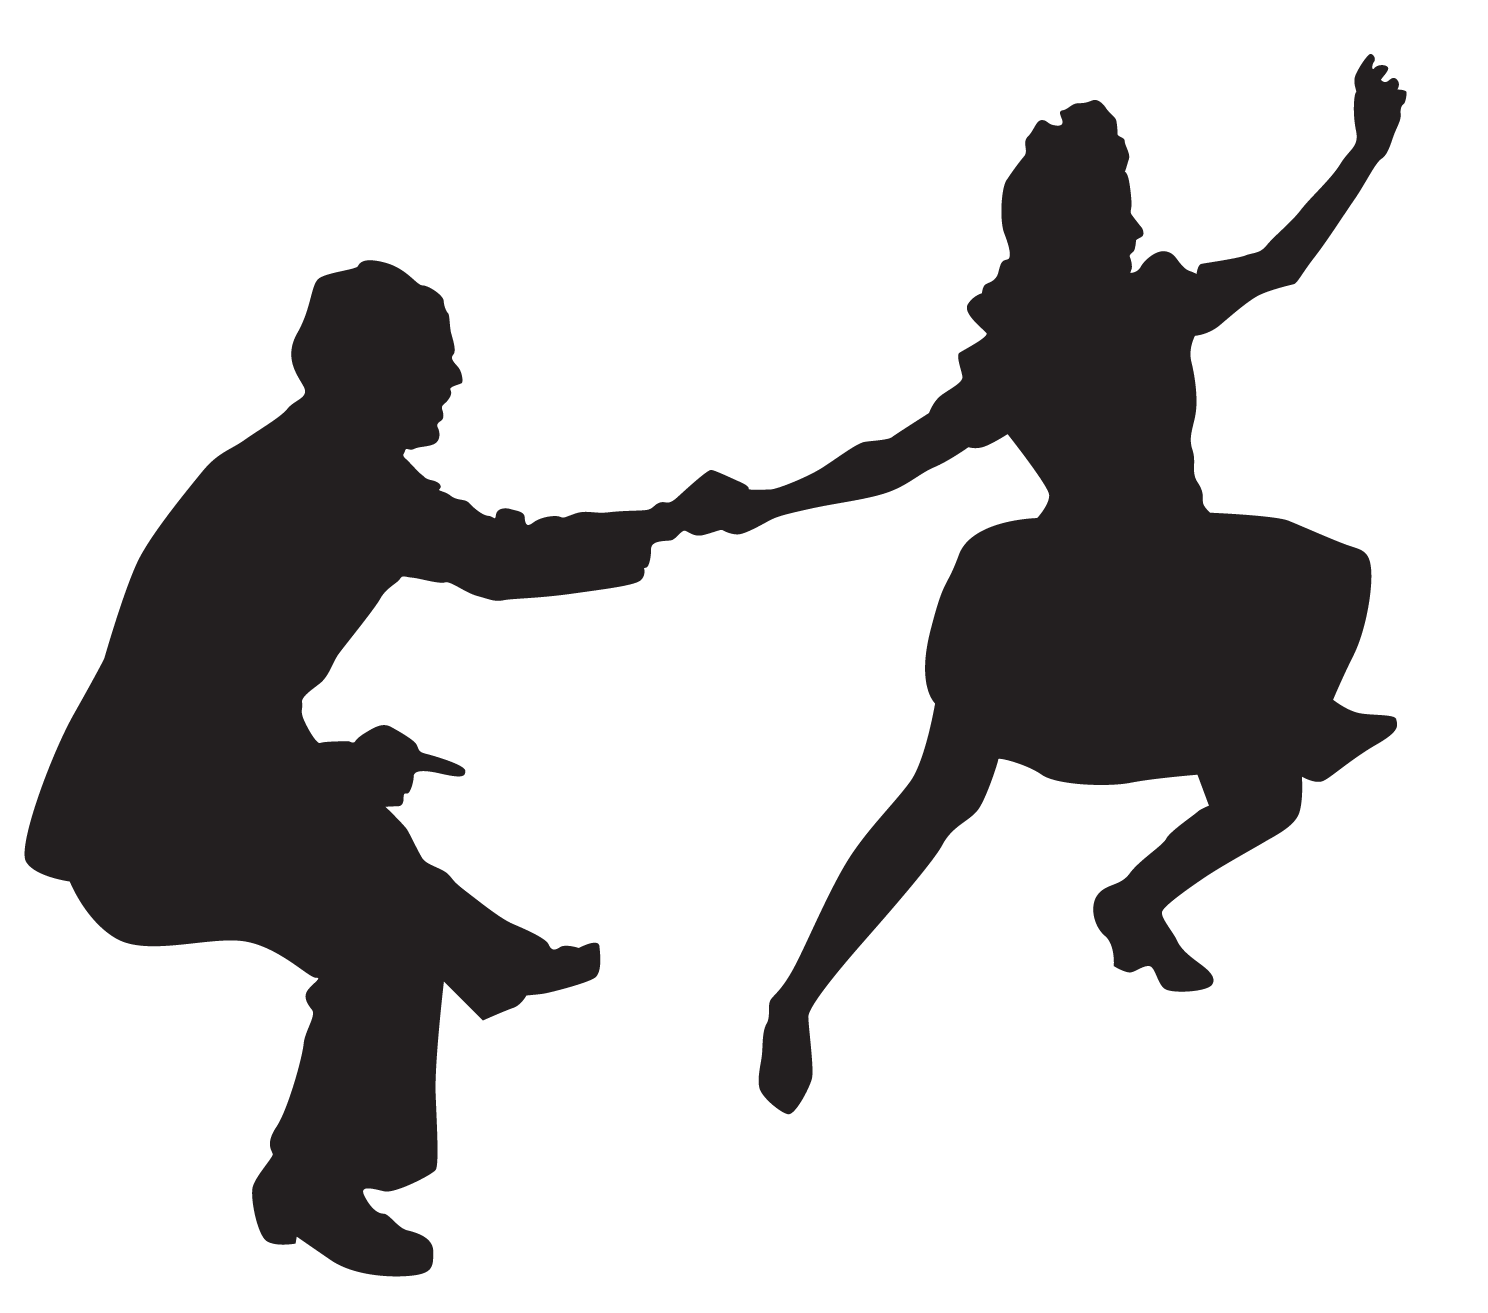 Baseball girl swinging clipart silhouette image transparent library Swing Silhouette at GetDrawings.com   Free for personal use Swing ... image transparent library